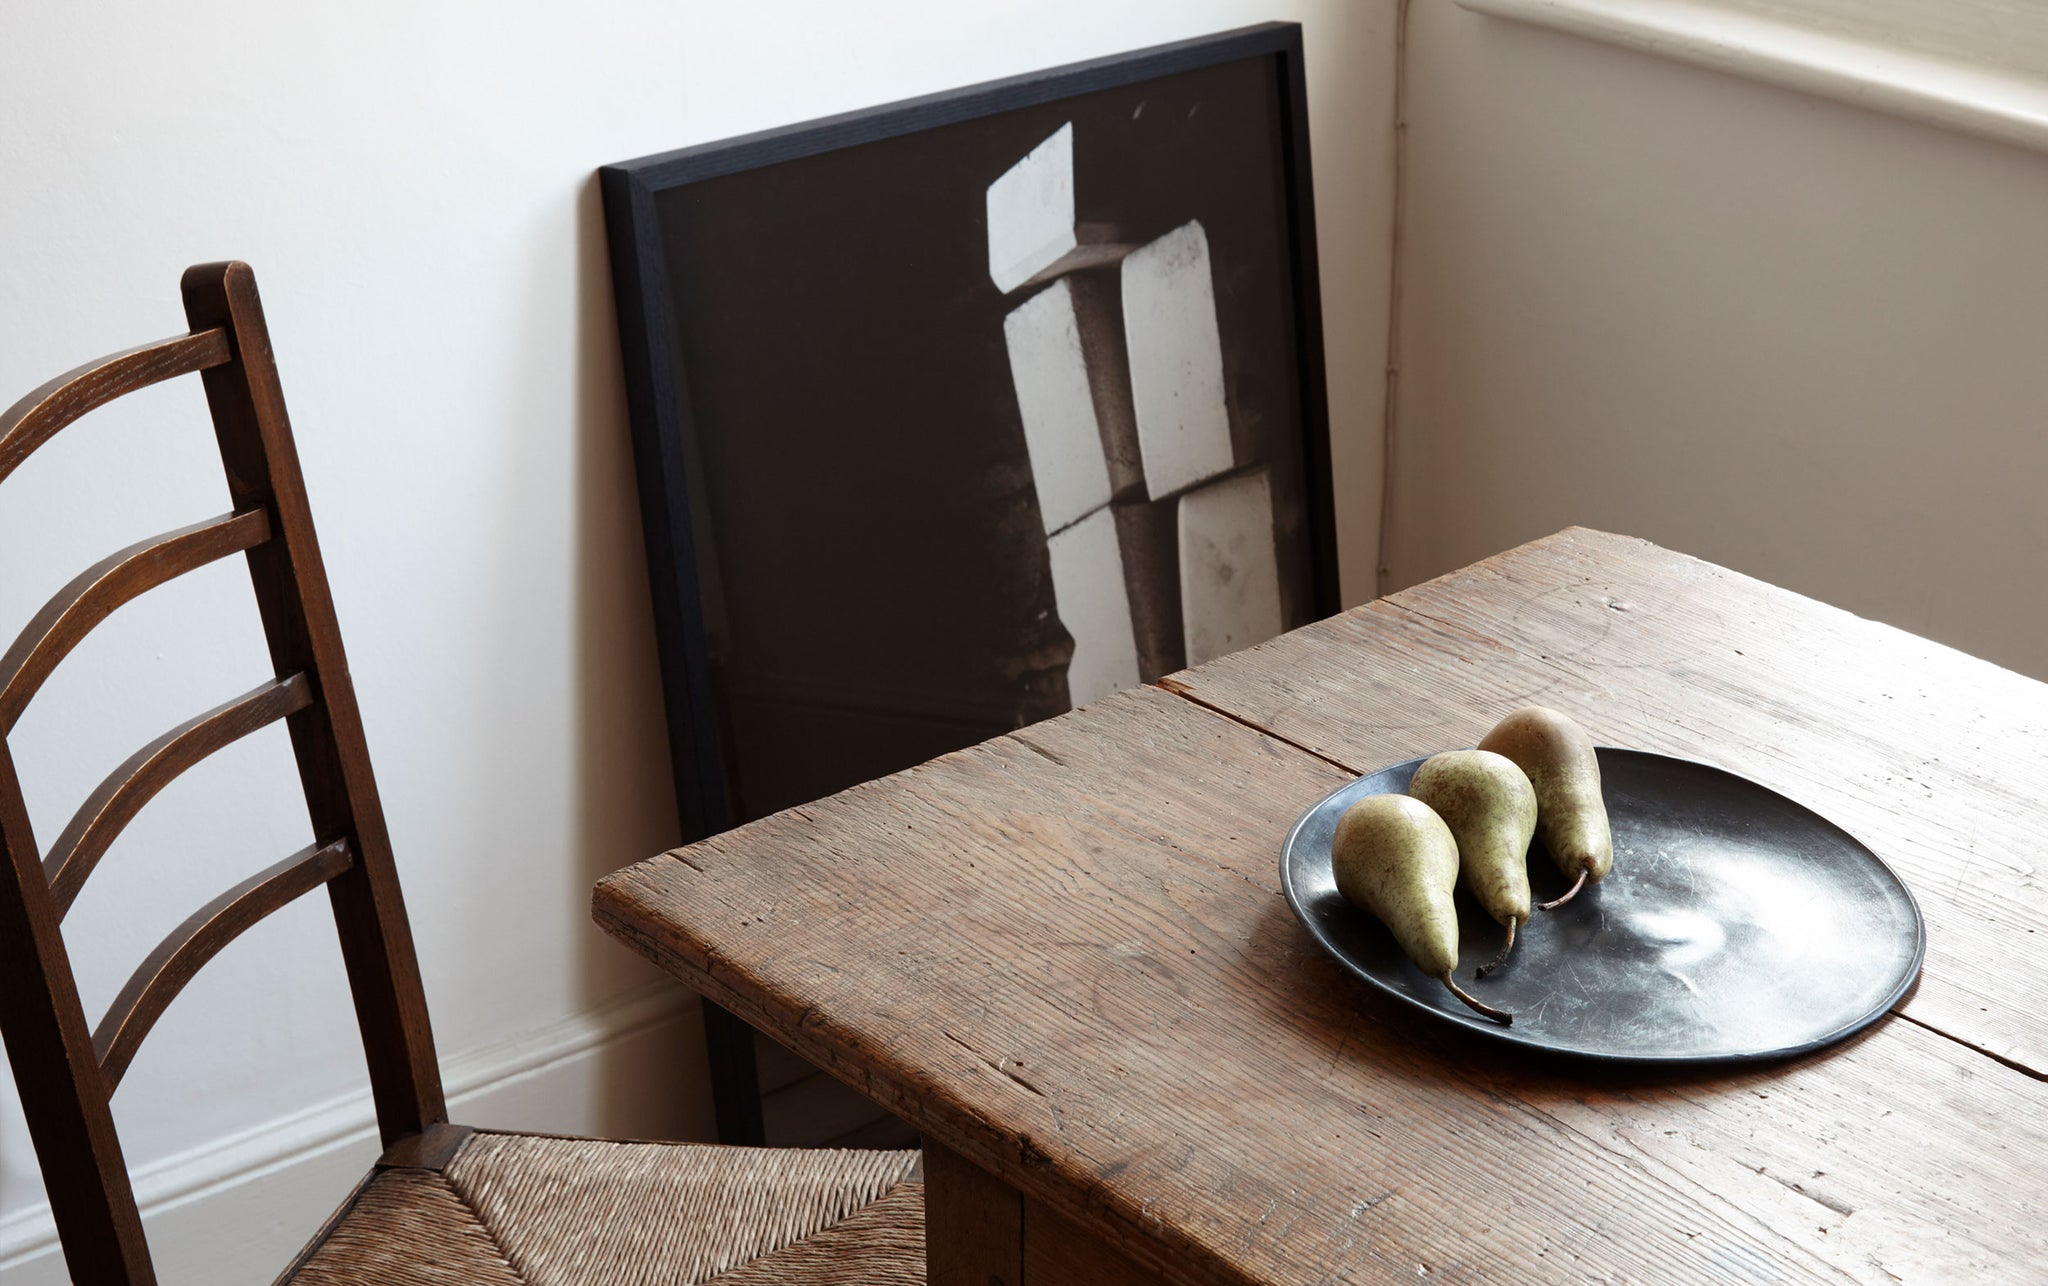 celestial table and chair with pears on a plate